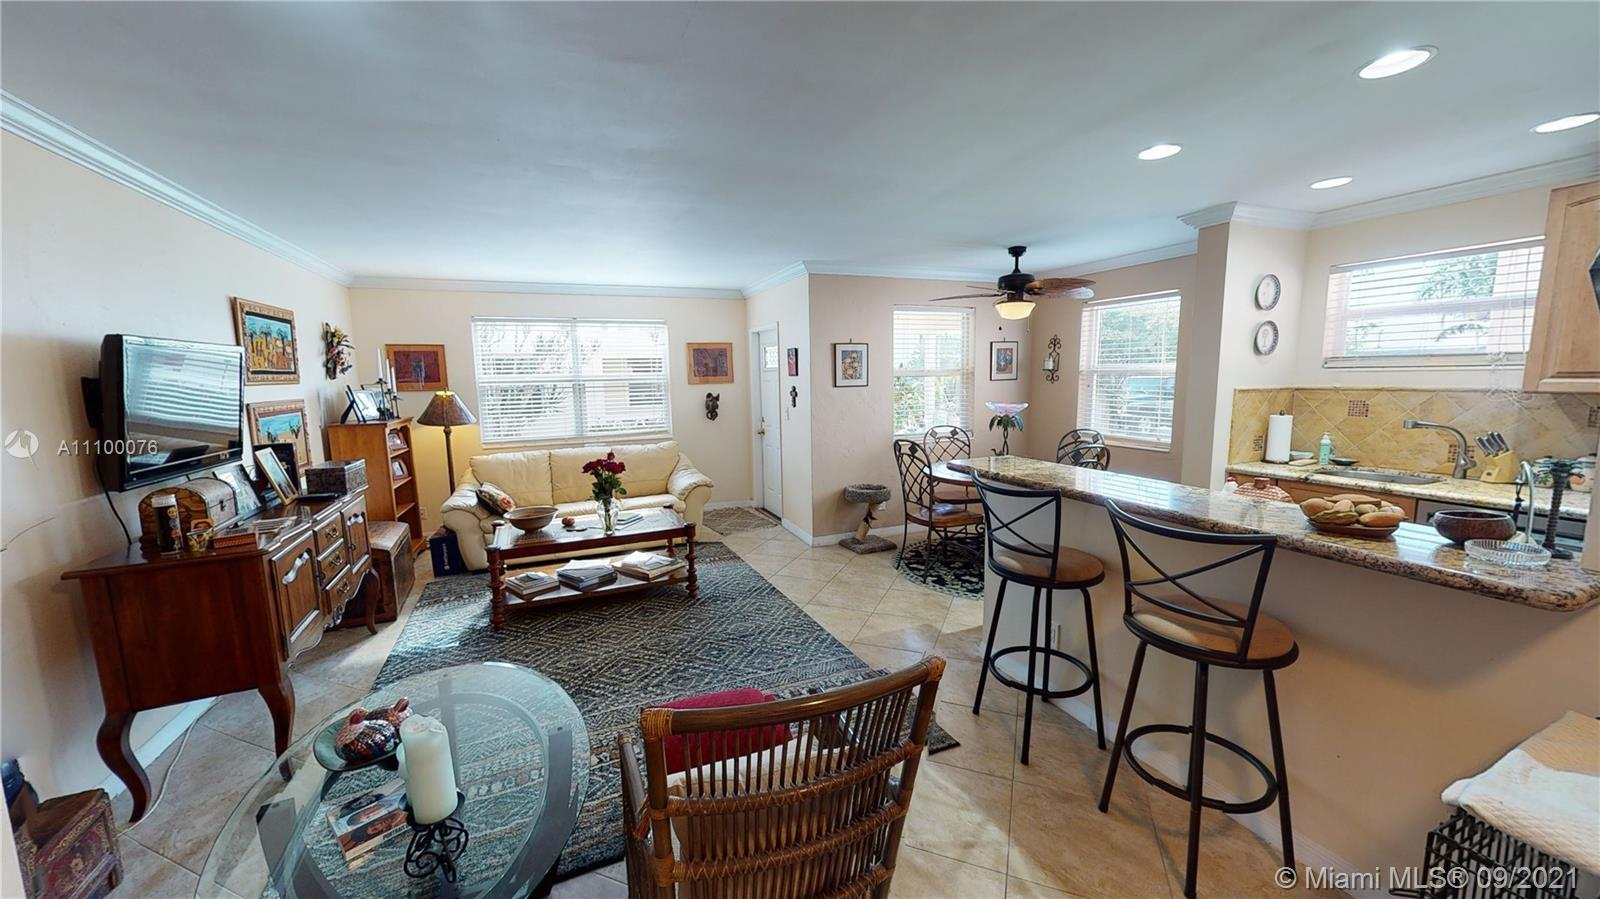 Stunning updated 2/2 on the water! Impact windows and doors. Community with boat dock, ocean access,